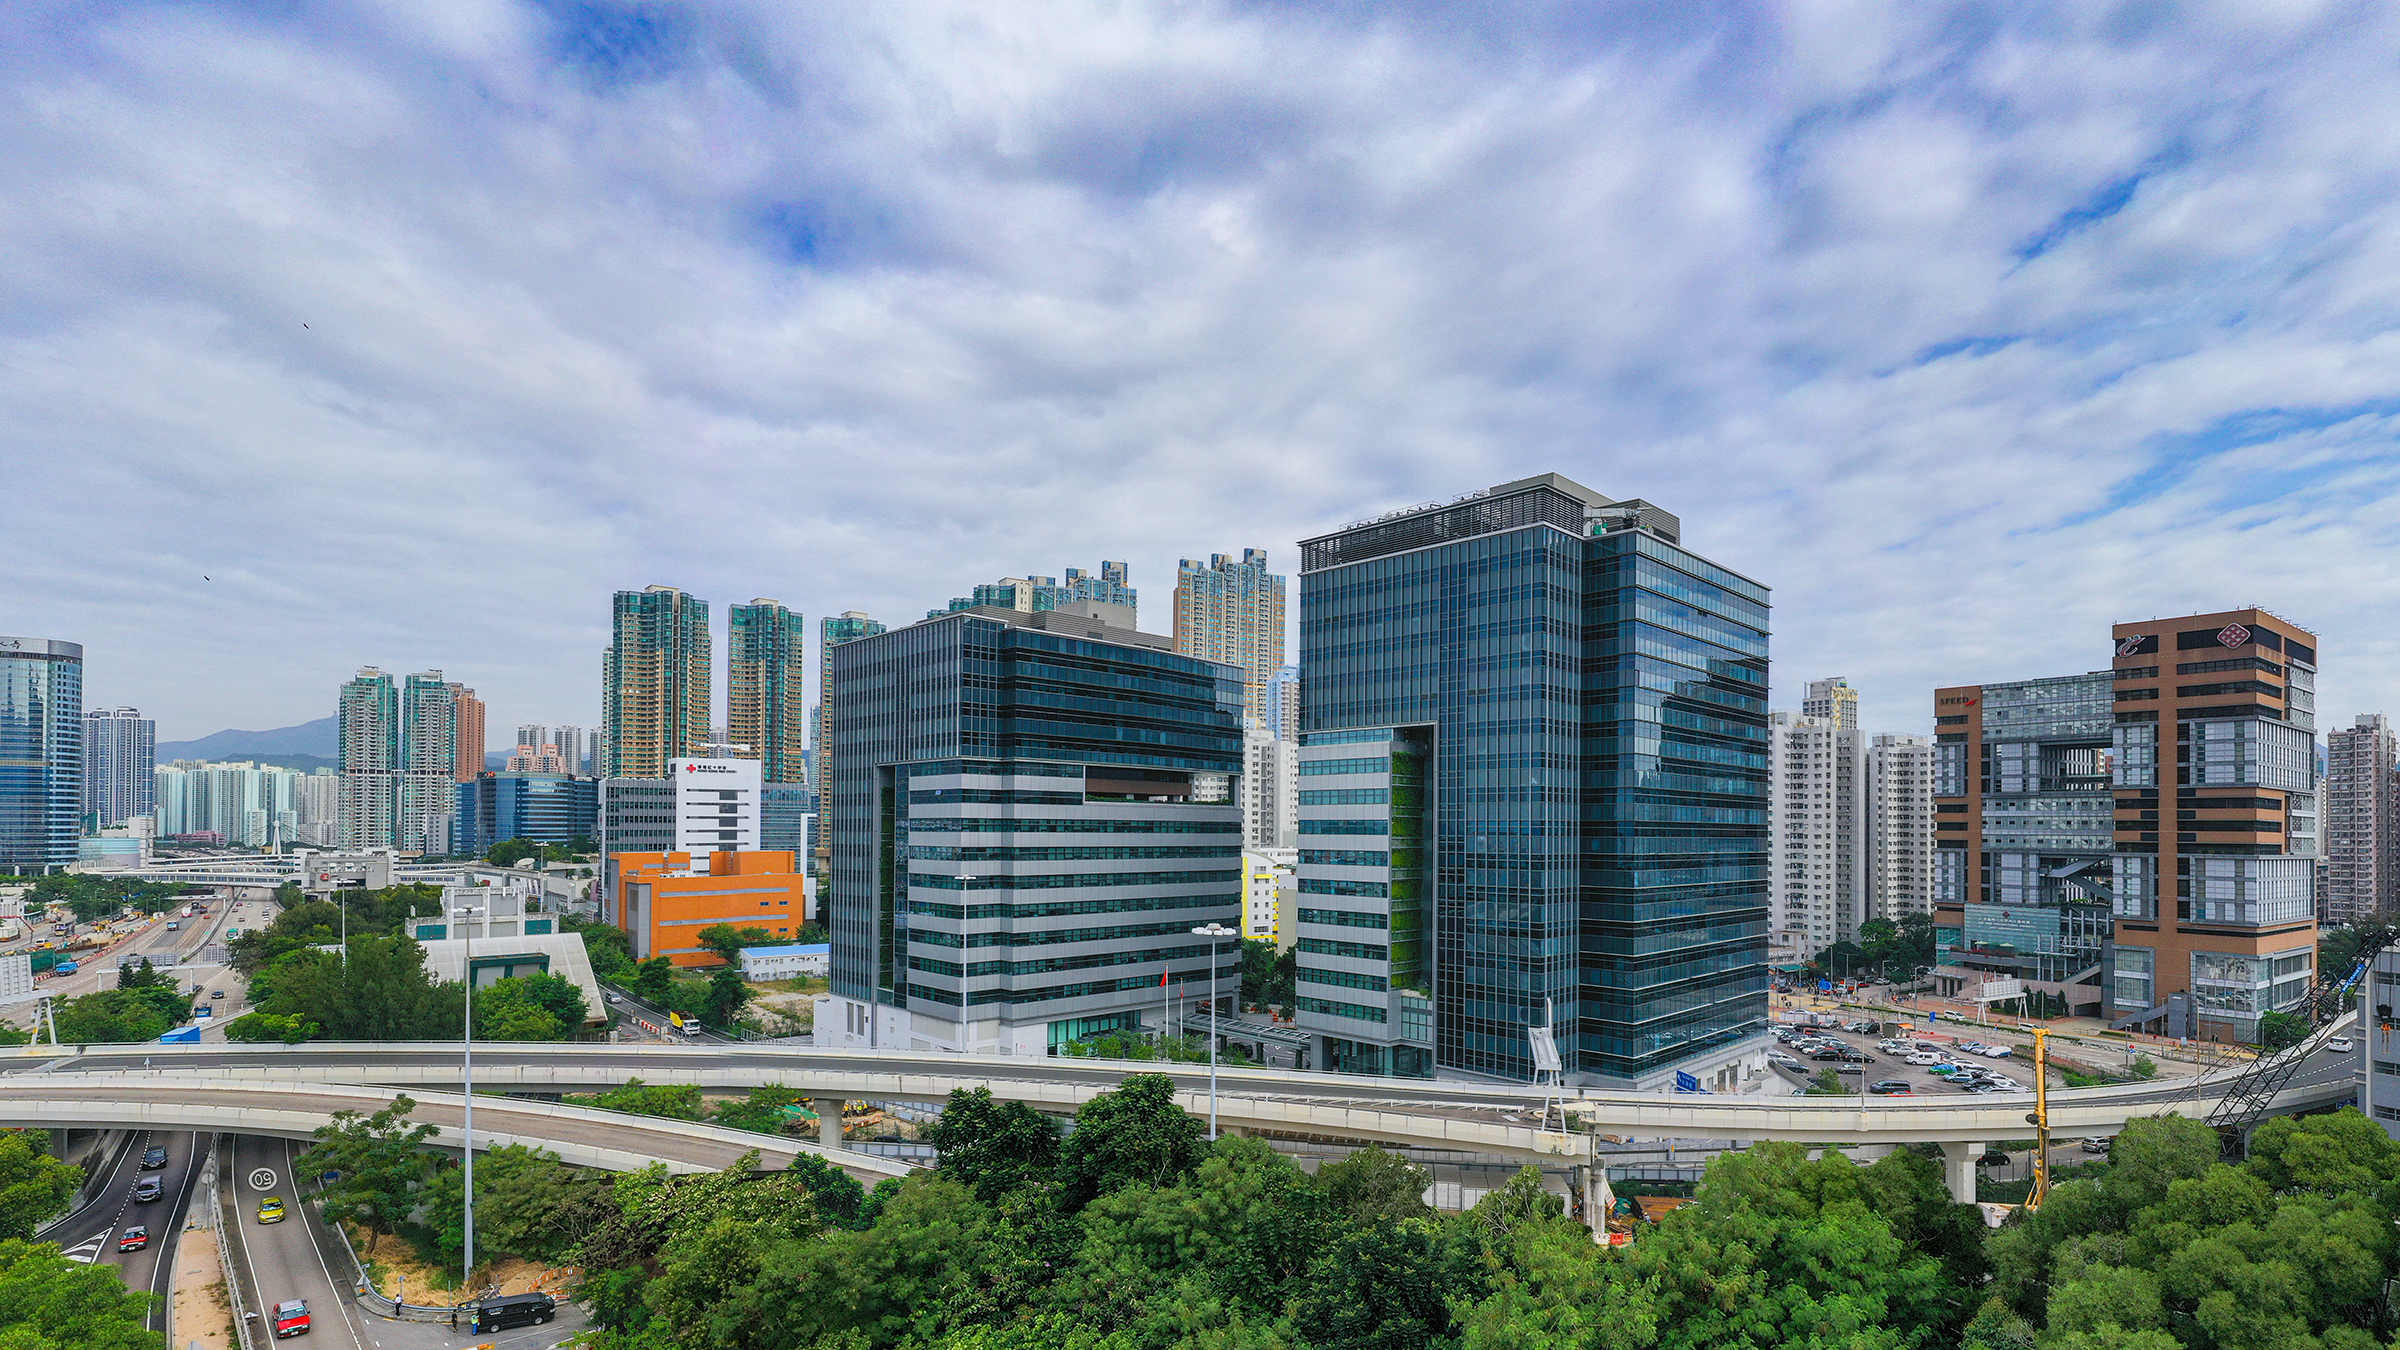 WEST KOWLOON GOVERNMENT OFFICES